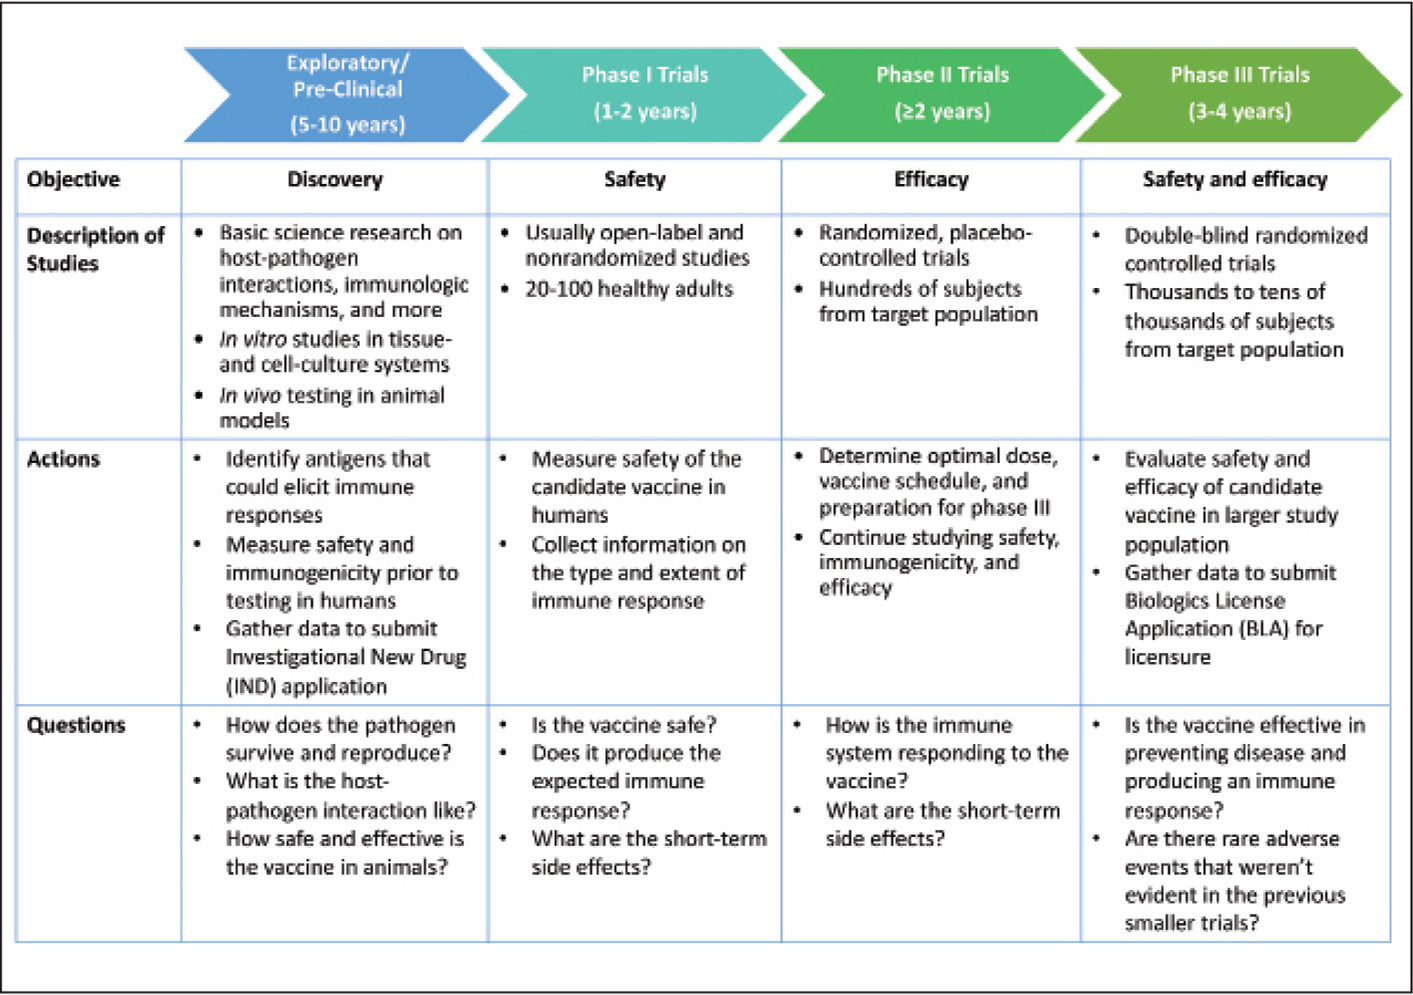 Overview of vaccine development before licensure: exploratory/preclinical stage and clinical development (Phase I, II, and III trials). Adapted from National Institute of Allergy and Infectious Diseases,11 Children's Hospital of Philadelphia,12 Baylor,14 Marshall and Baylor,15 and Hudgens et al.16